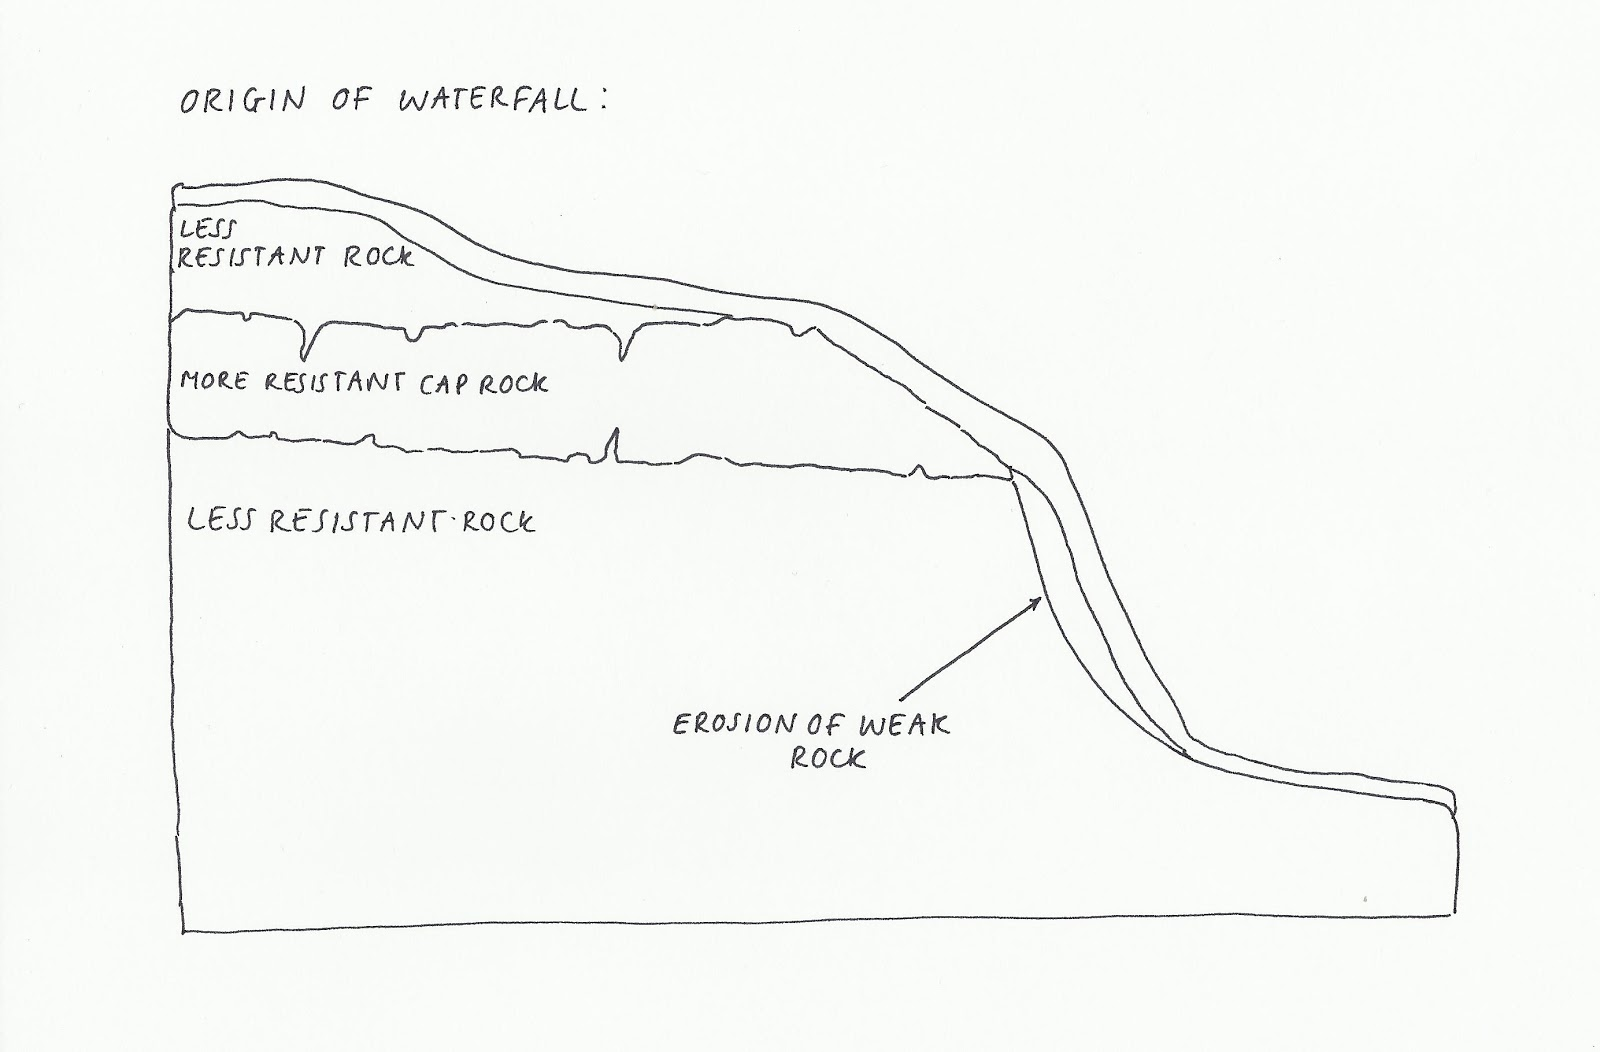 Formation of a waterfall phys geog formation of a waterfall ccuart Images